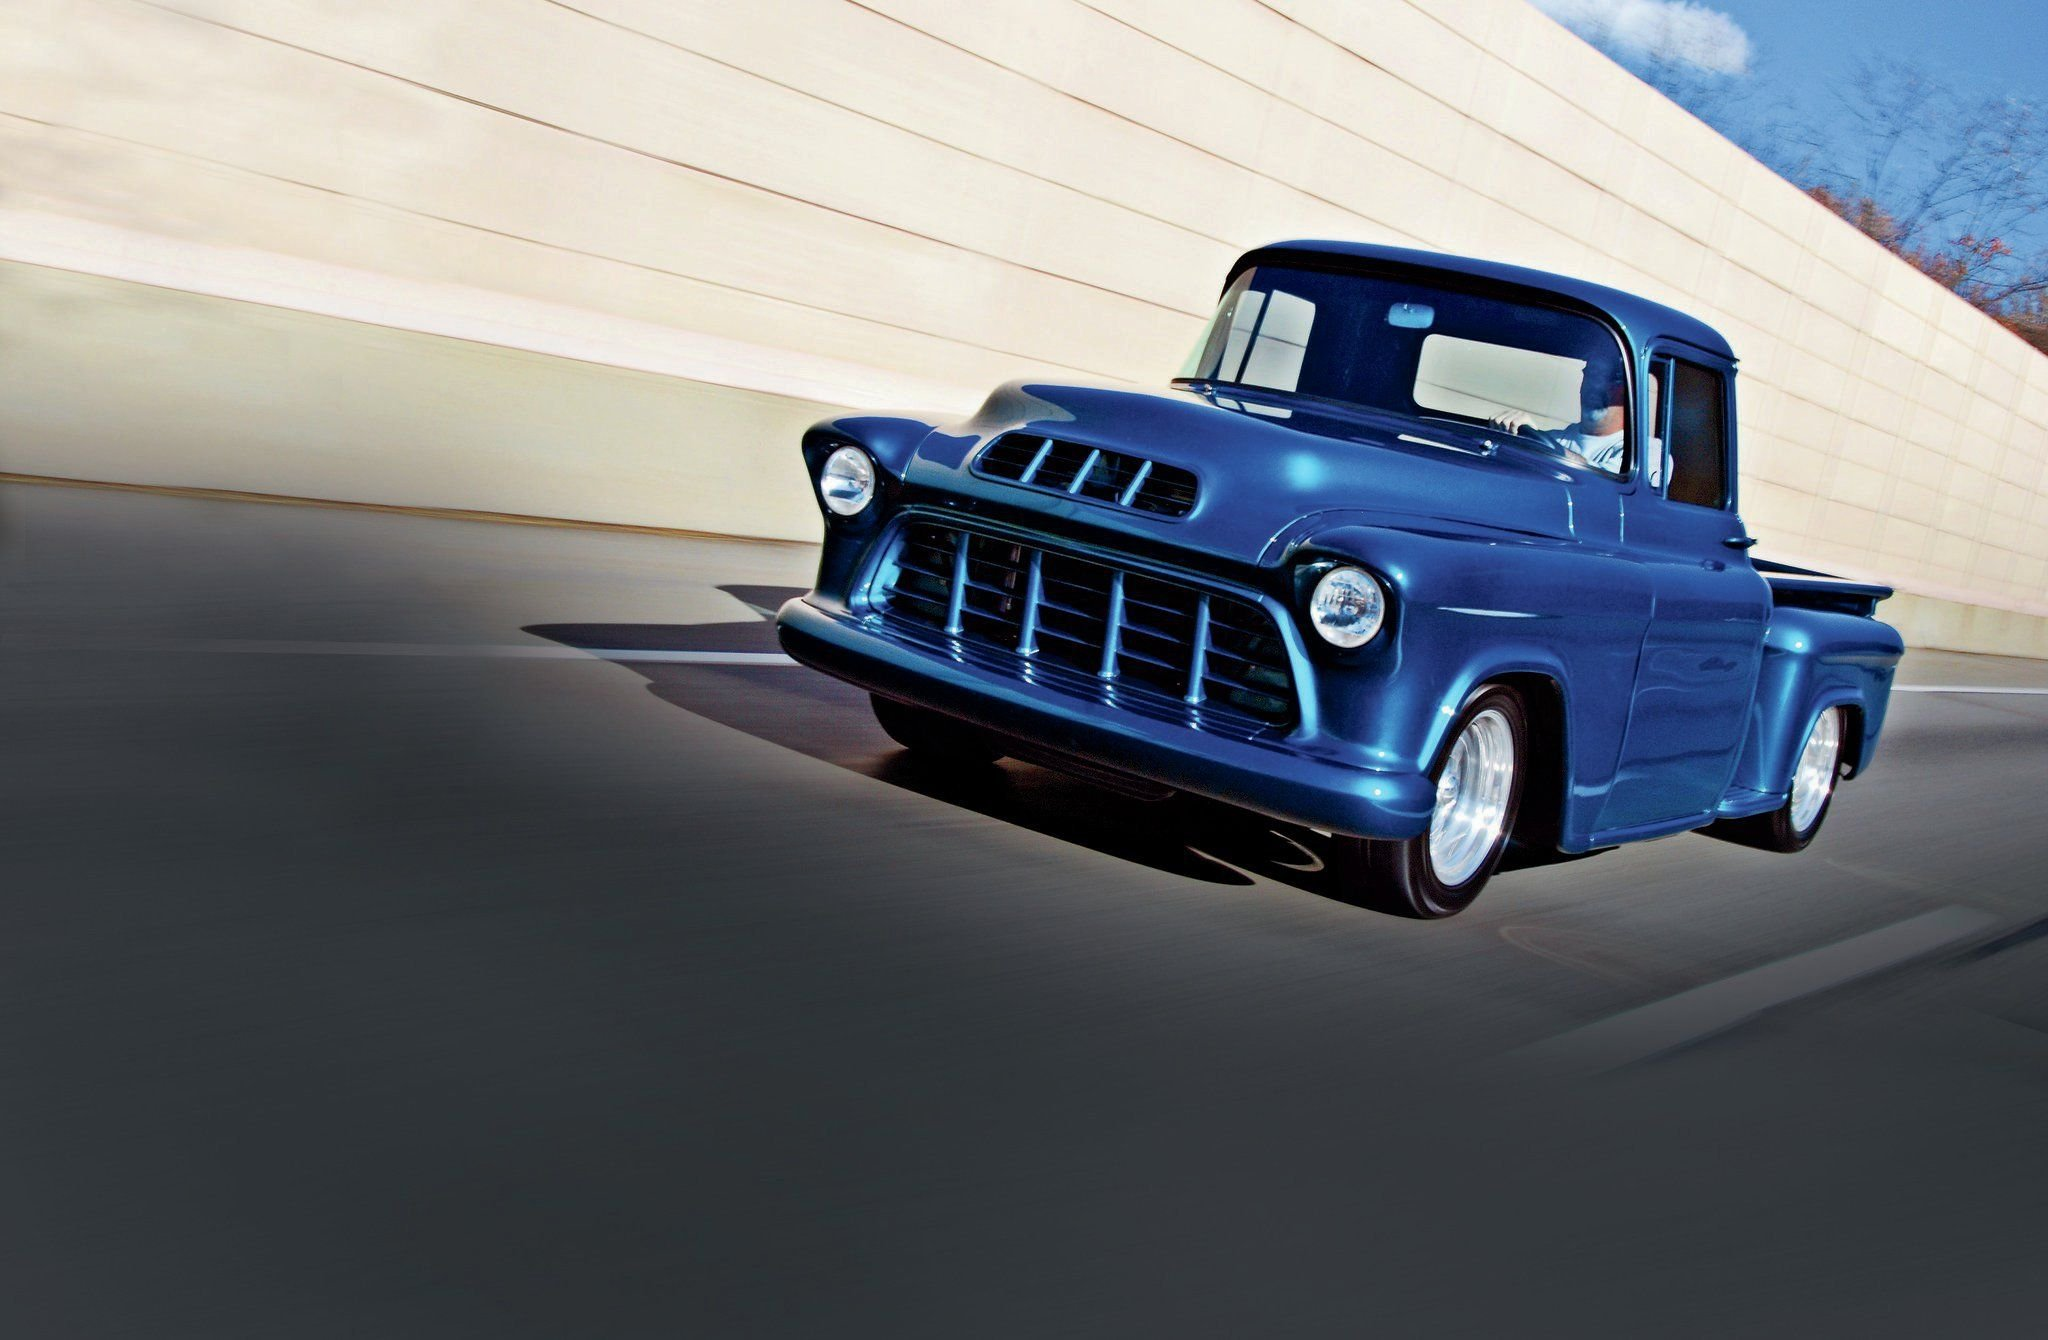 1955 GMC Pickup-01 wallpaper